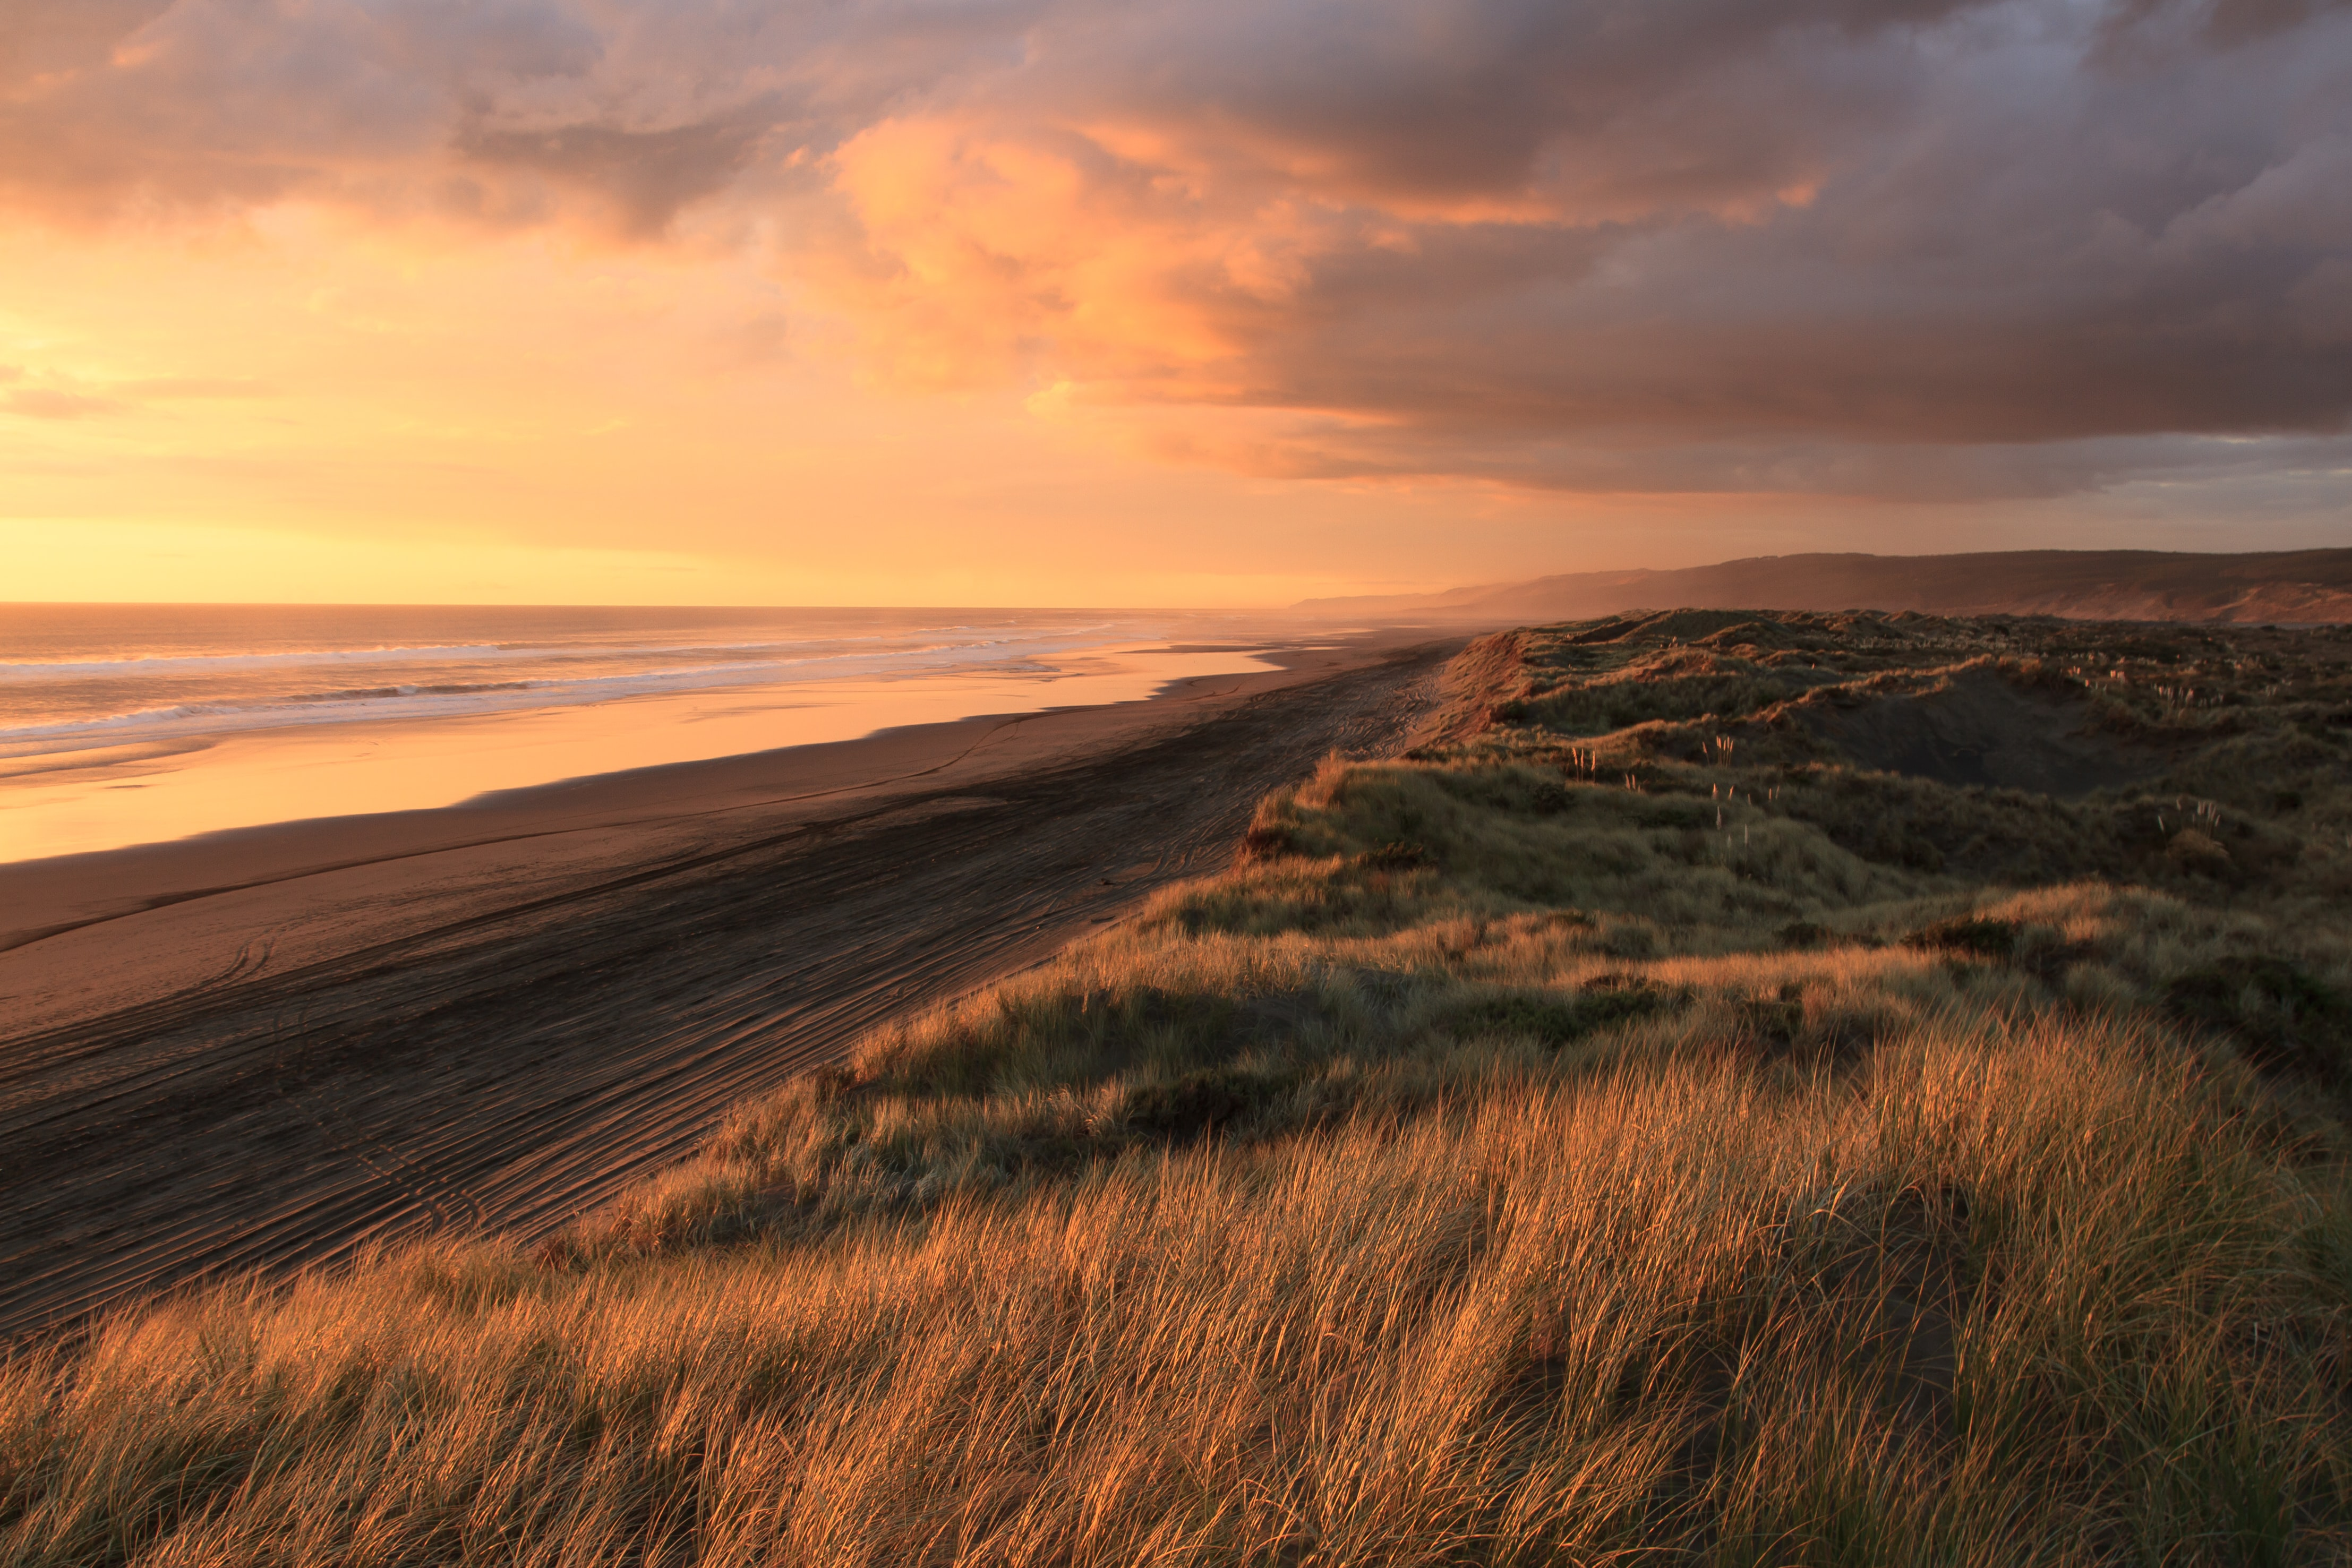 A cloudy sunset over the grassy sand dunes and coastal water at Port Waikato, Tuakau, Auckland, New Zealand